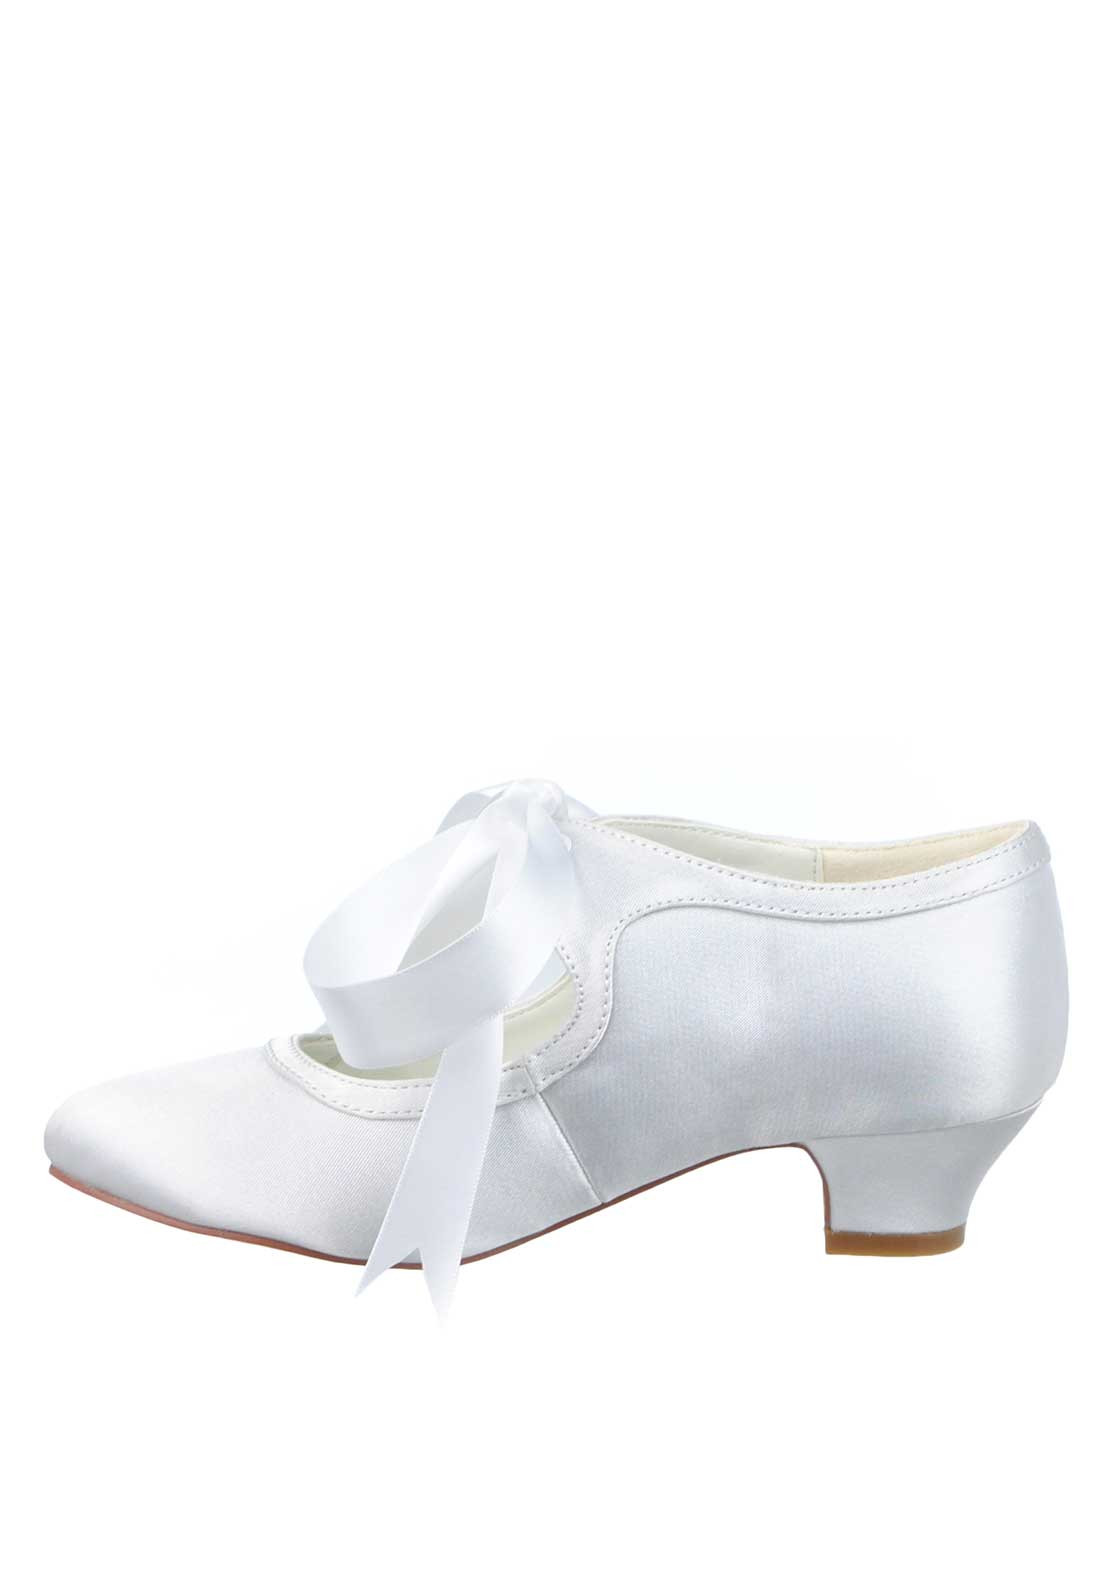 Wedding Communion Shoes buy little people girls bow satin communion shoes white more views